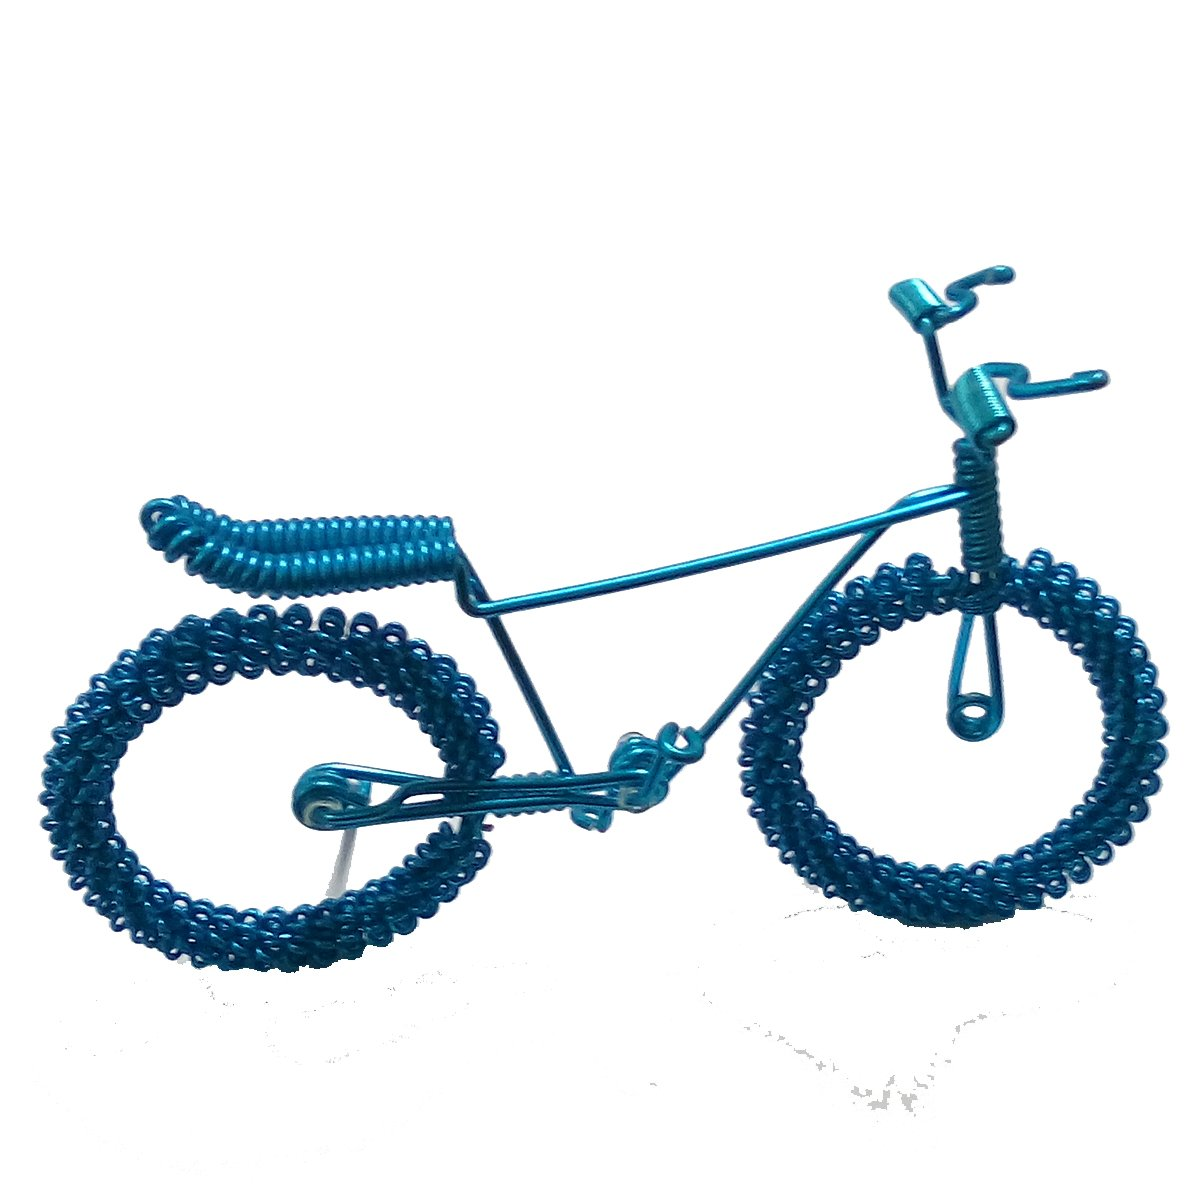 Handcrafted Men Mountain Bike Model Unique Biking Birthday Gifts For Cyclists Metal Vintage Bicycle Art